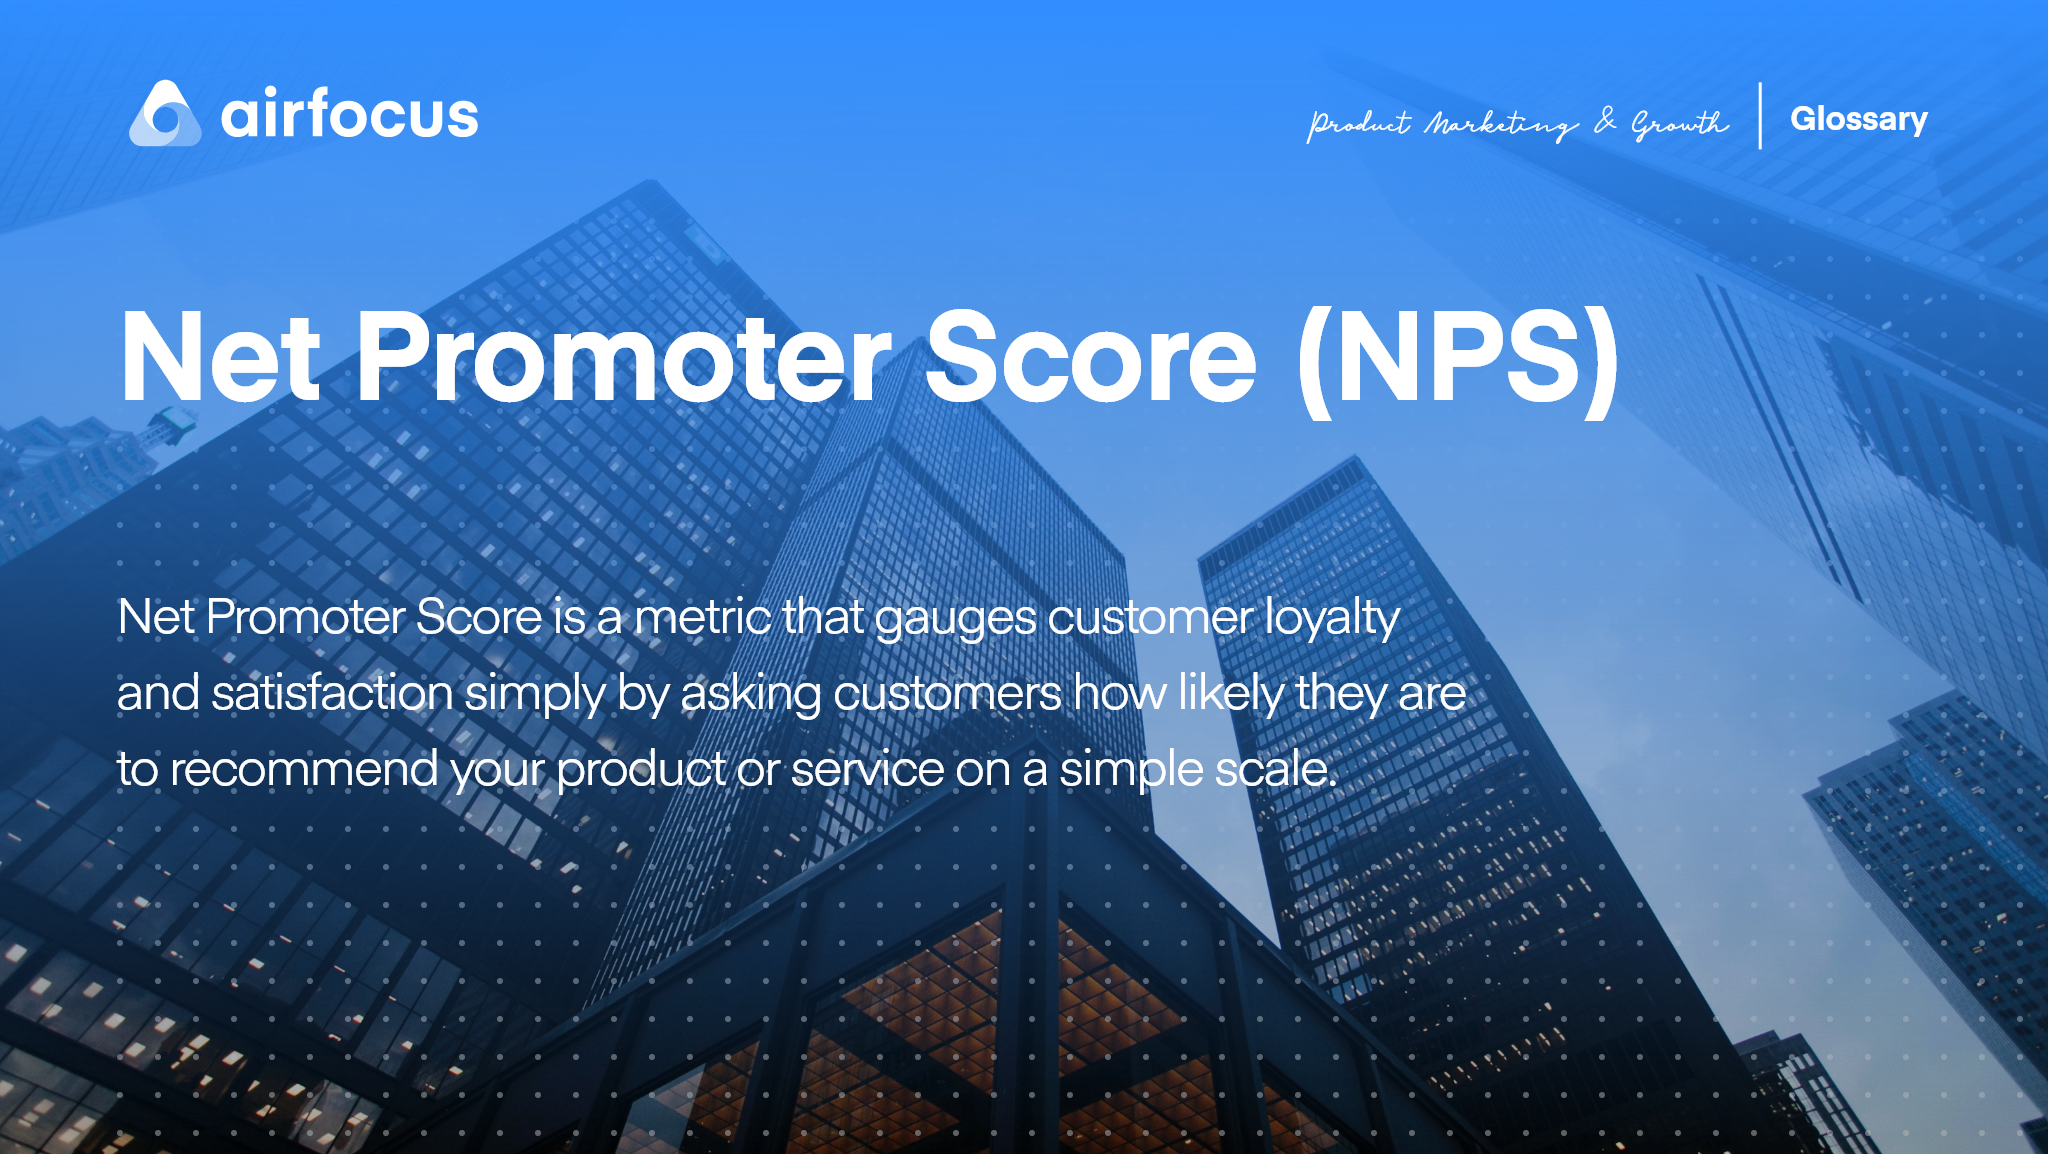 What is Net Promoter Score (NPS)